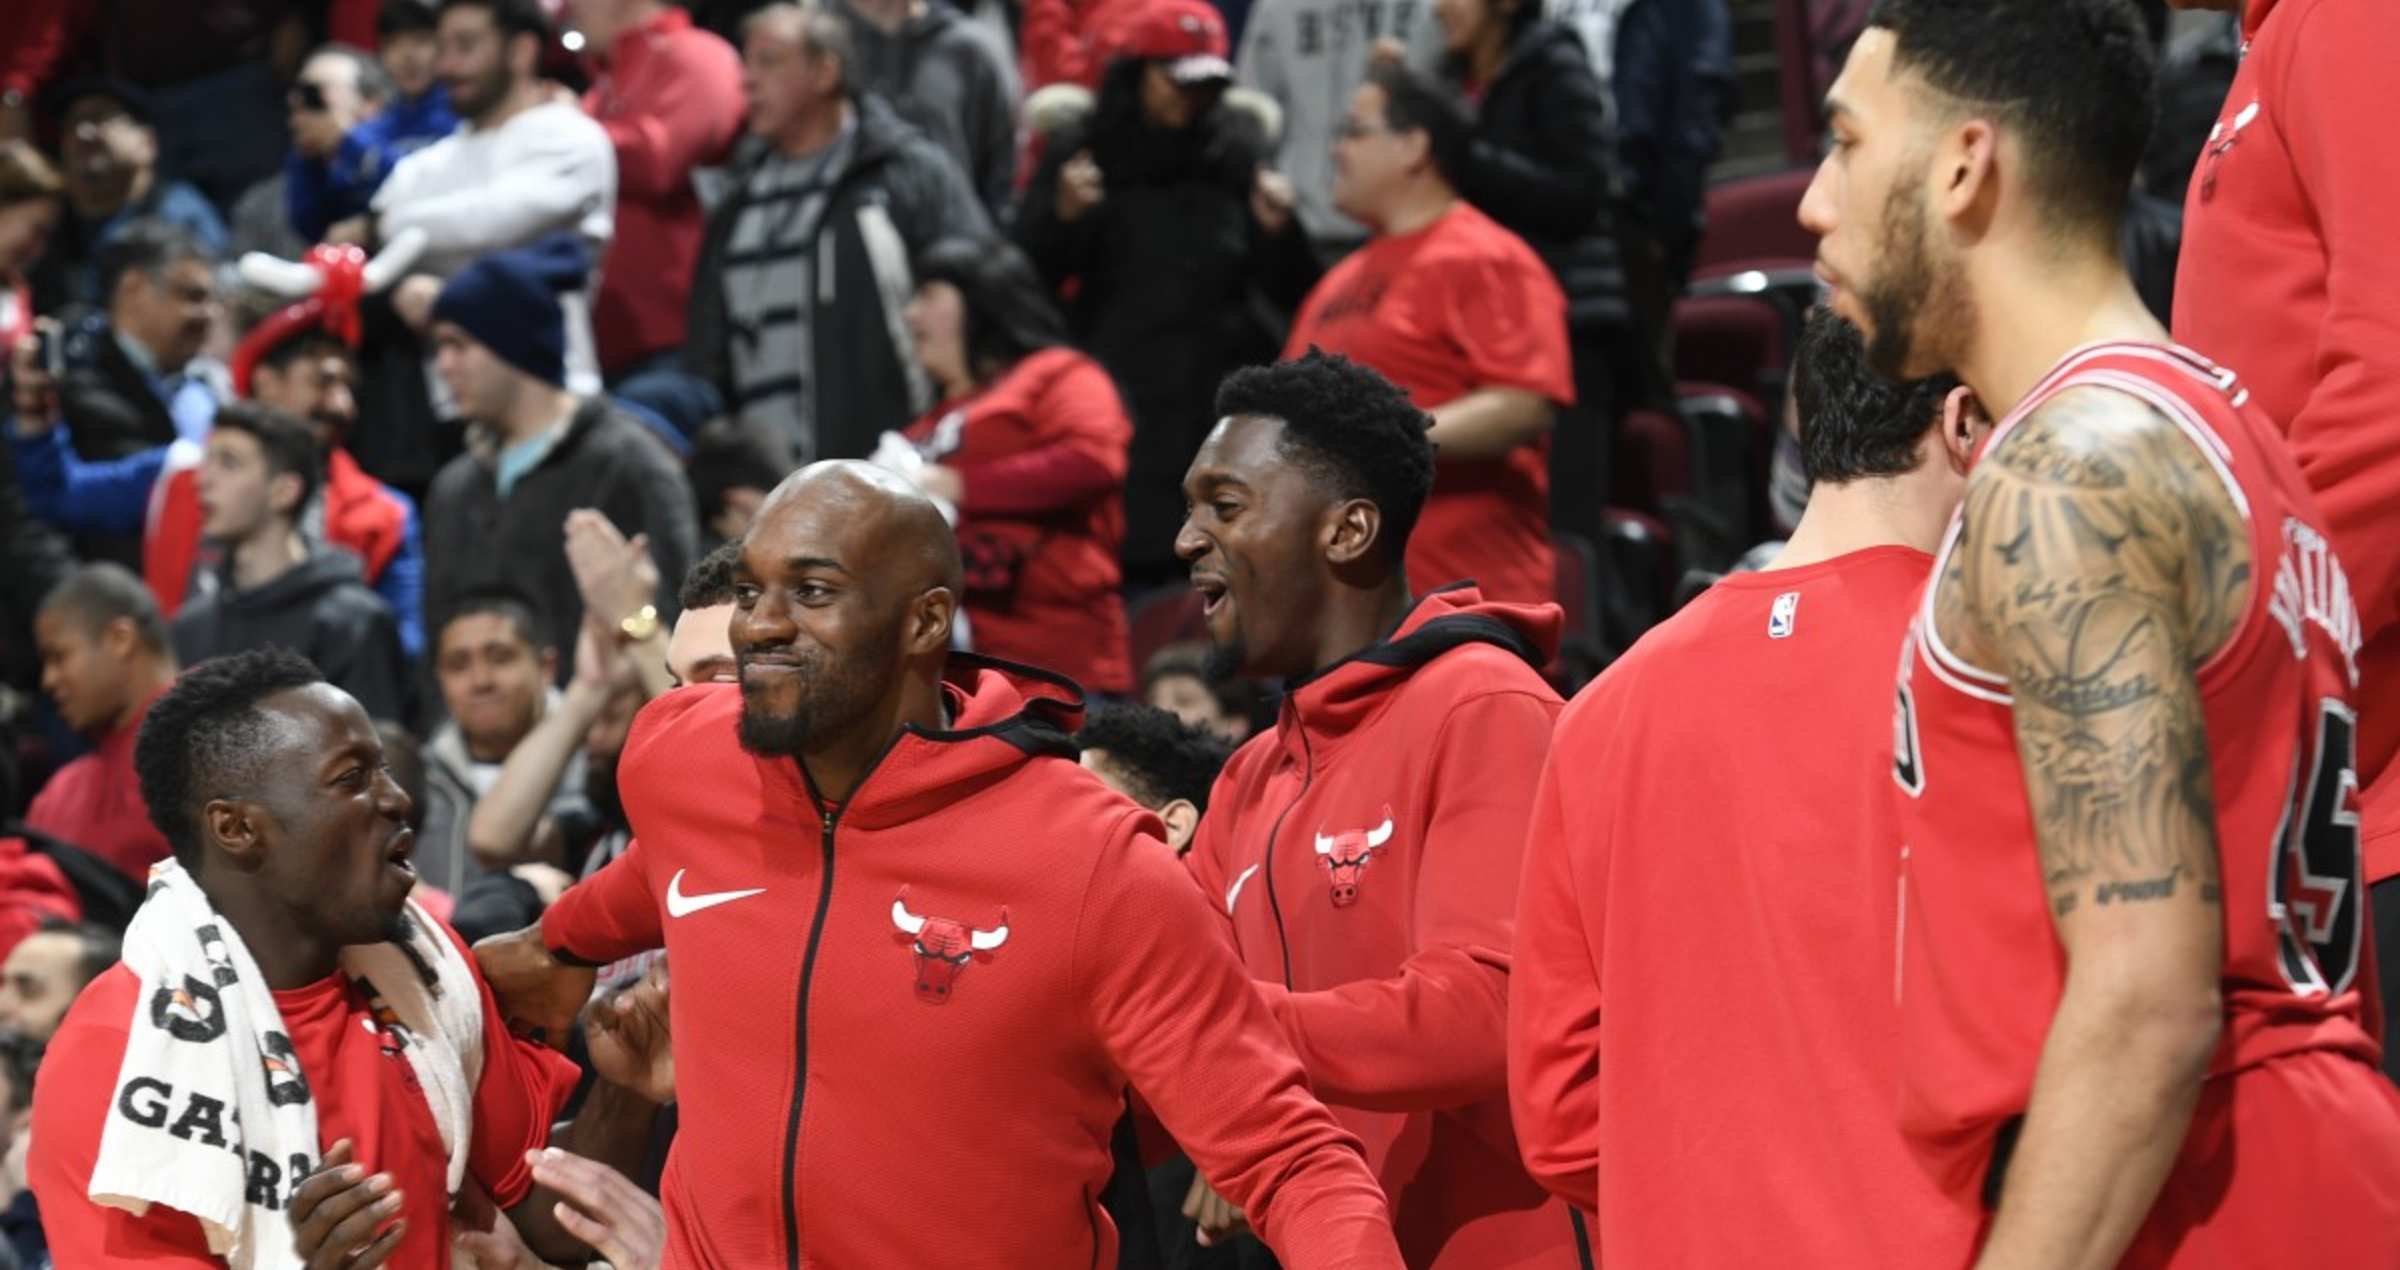 Bench reacts at the United Center against the Knicks on December 27th, 2017.